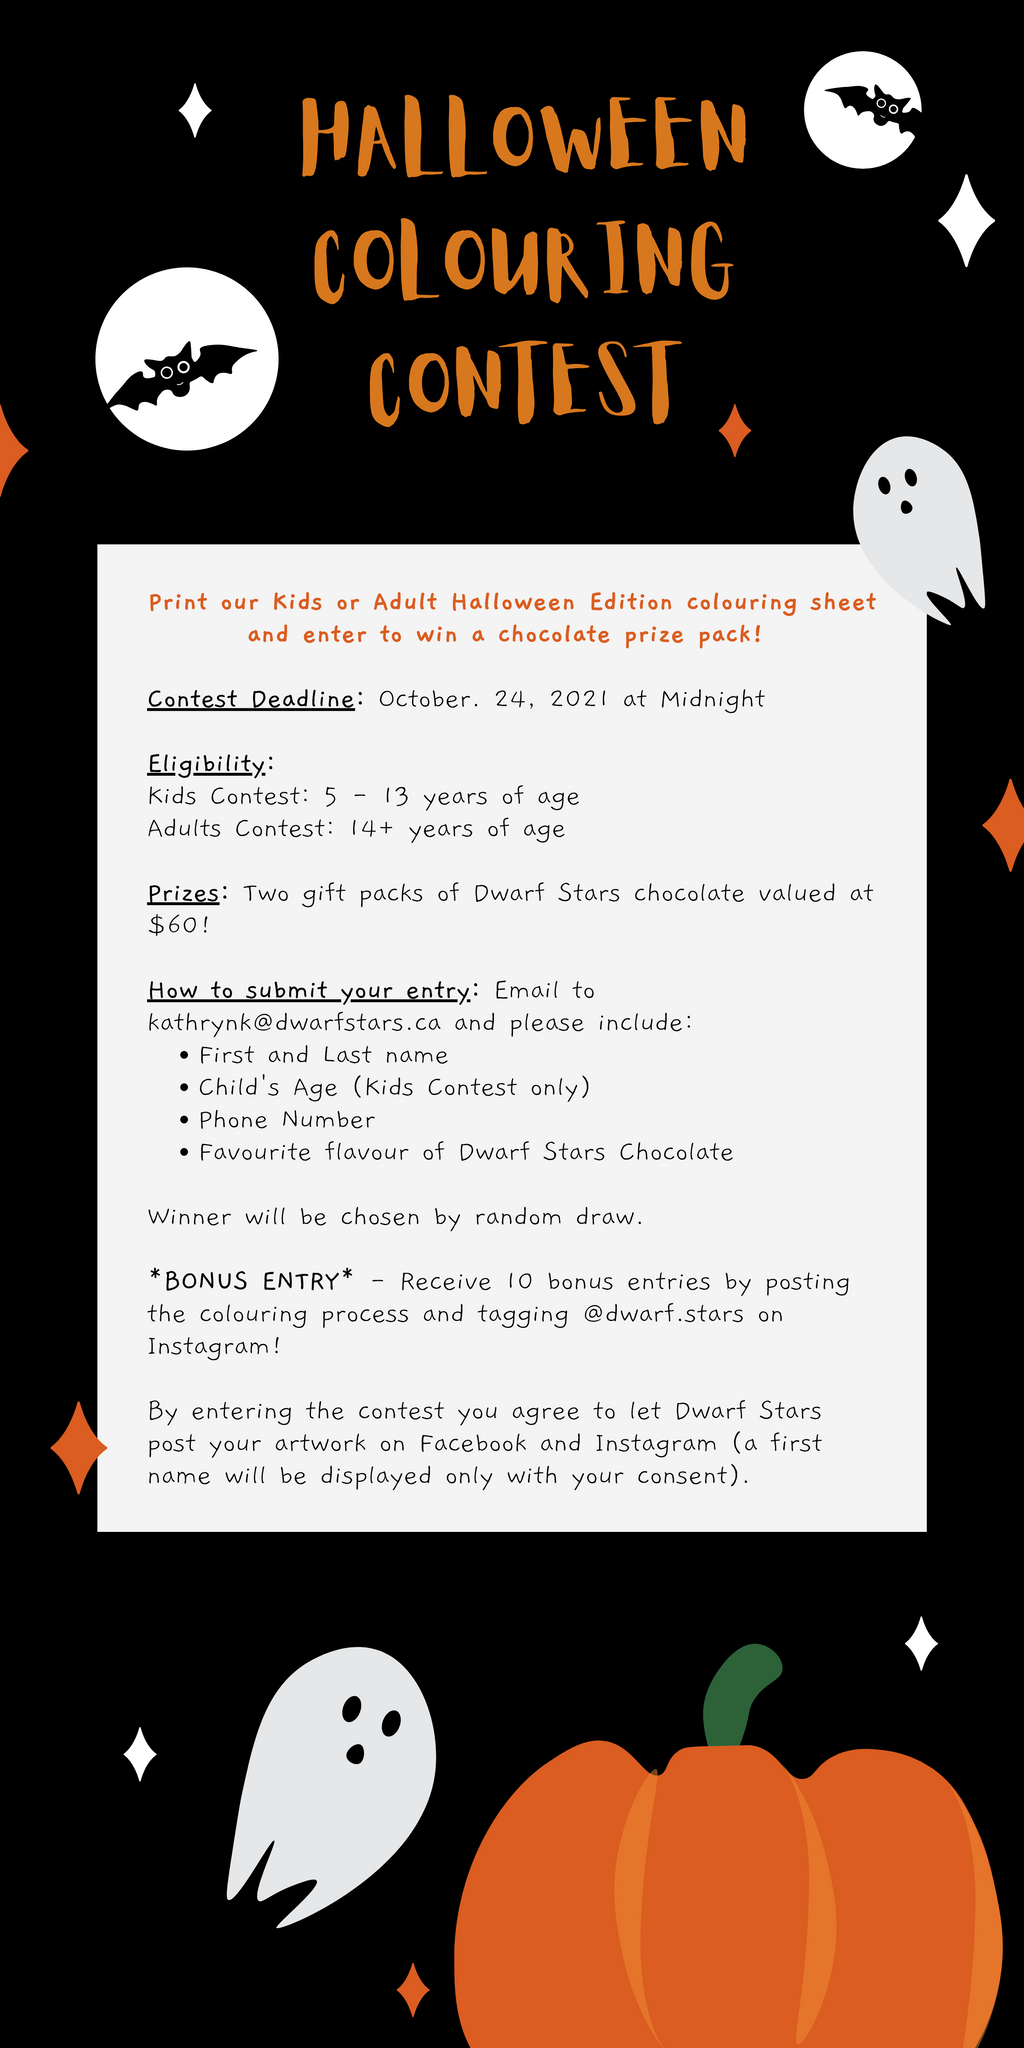 Halloween Colouring Contest Rules